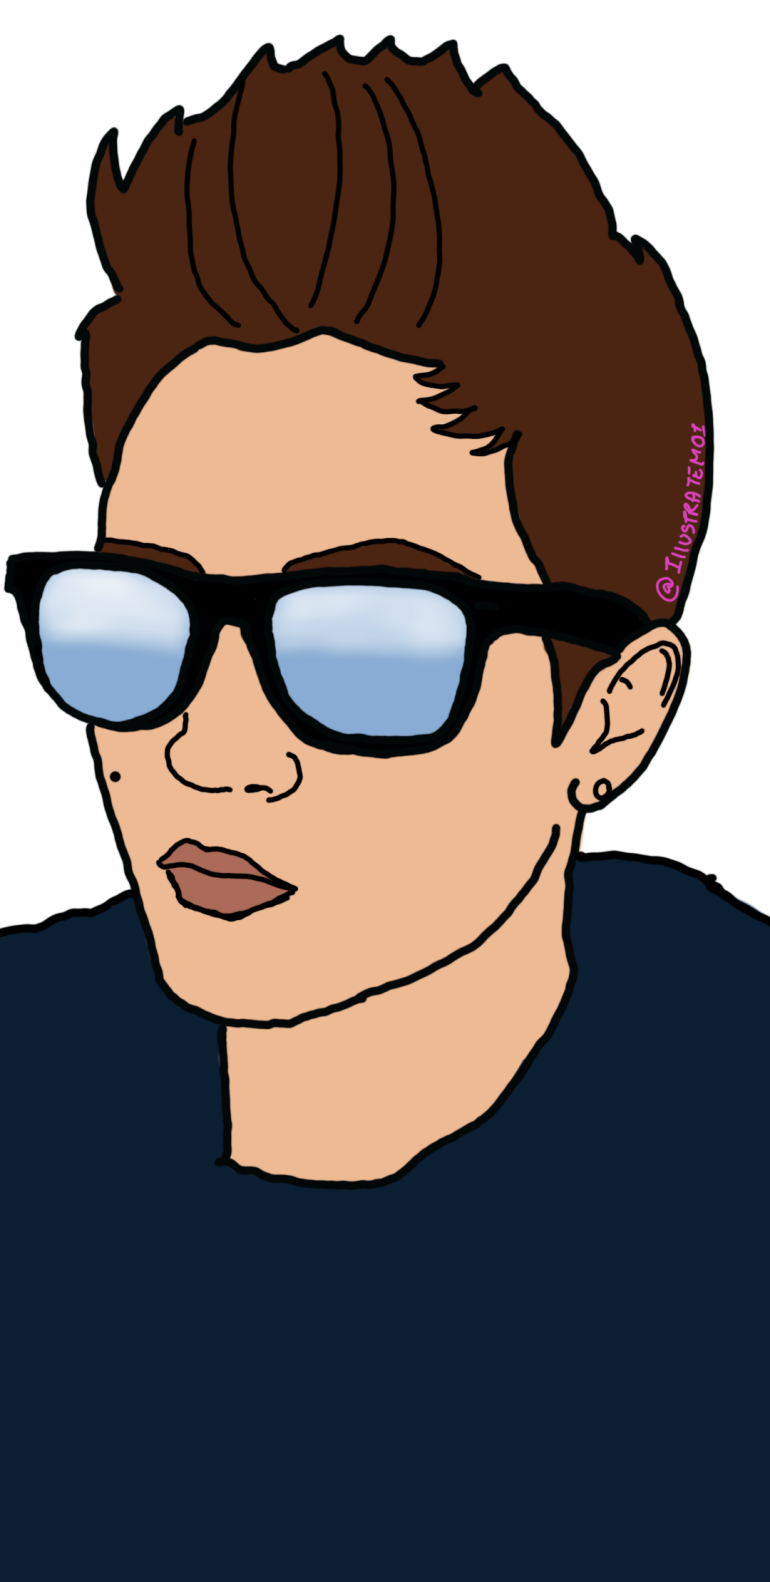 Pixie hair brunette illustration of a woman with sunglasses